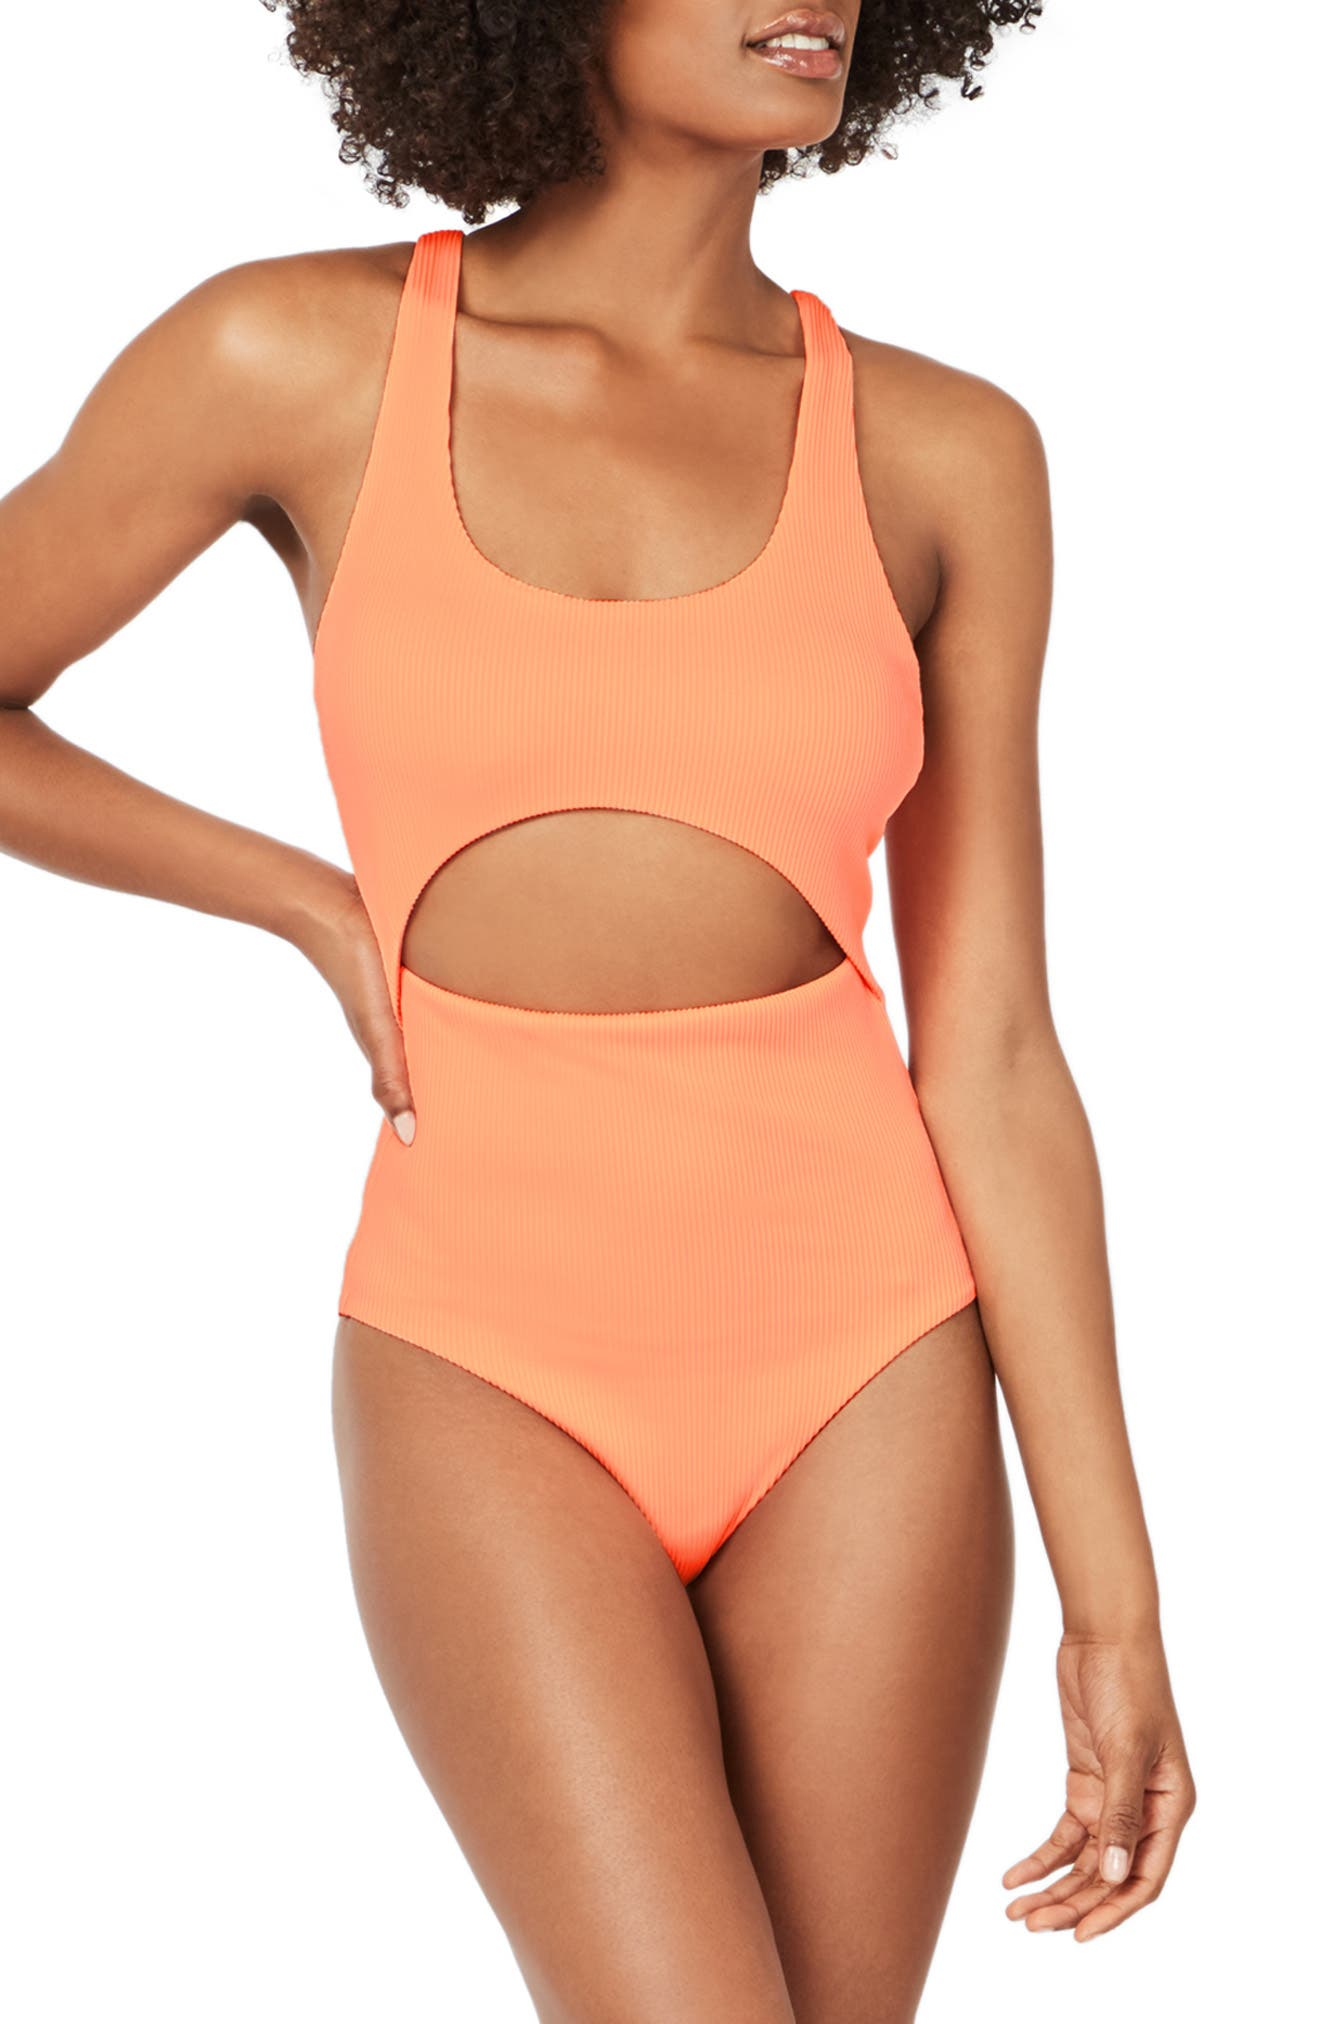 Vintage Bathing Suits | Retro Swimwear | Vintage Swimsuits Womens Sweaty Betty Retro Cutout One-Piece Swimsuit $120.00 AT vintagedancer.com